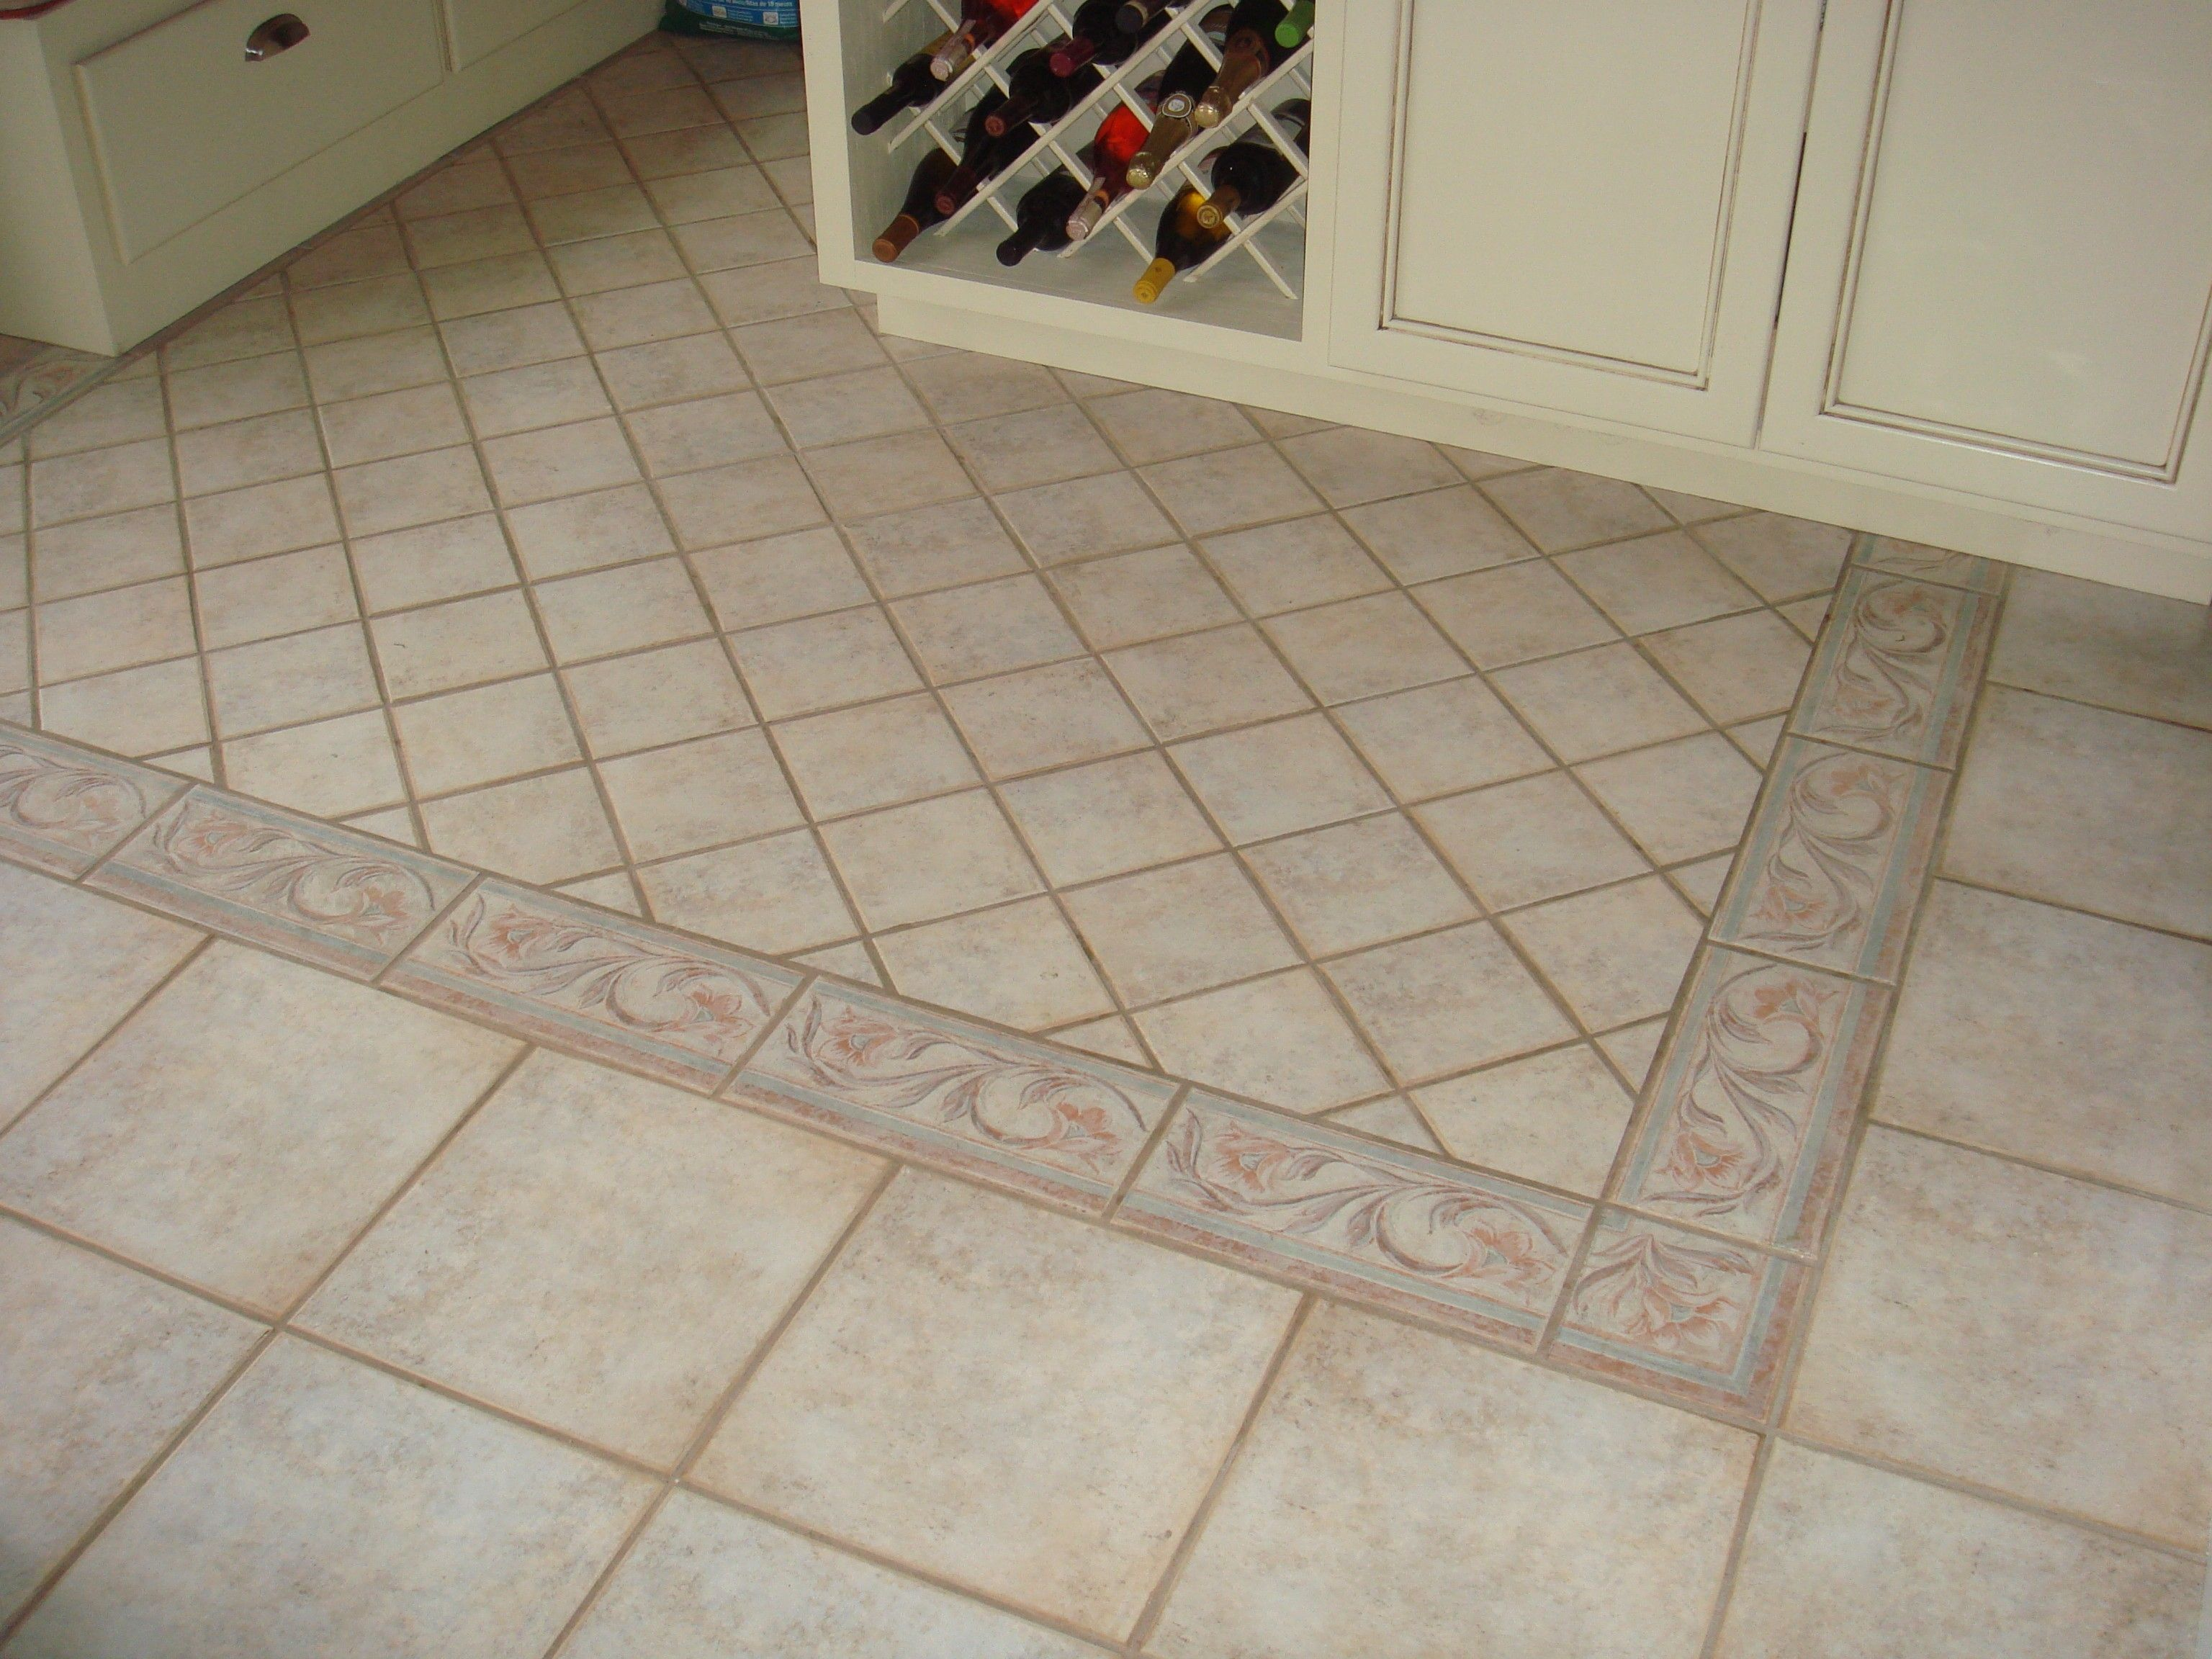 Ceramic Tile Floor Design Ideas